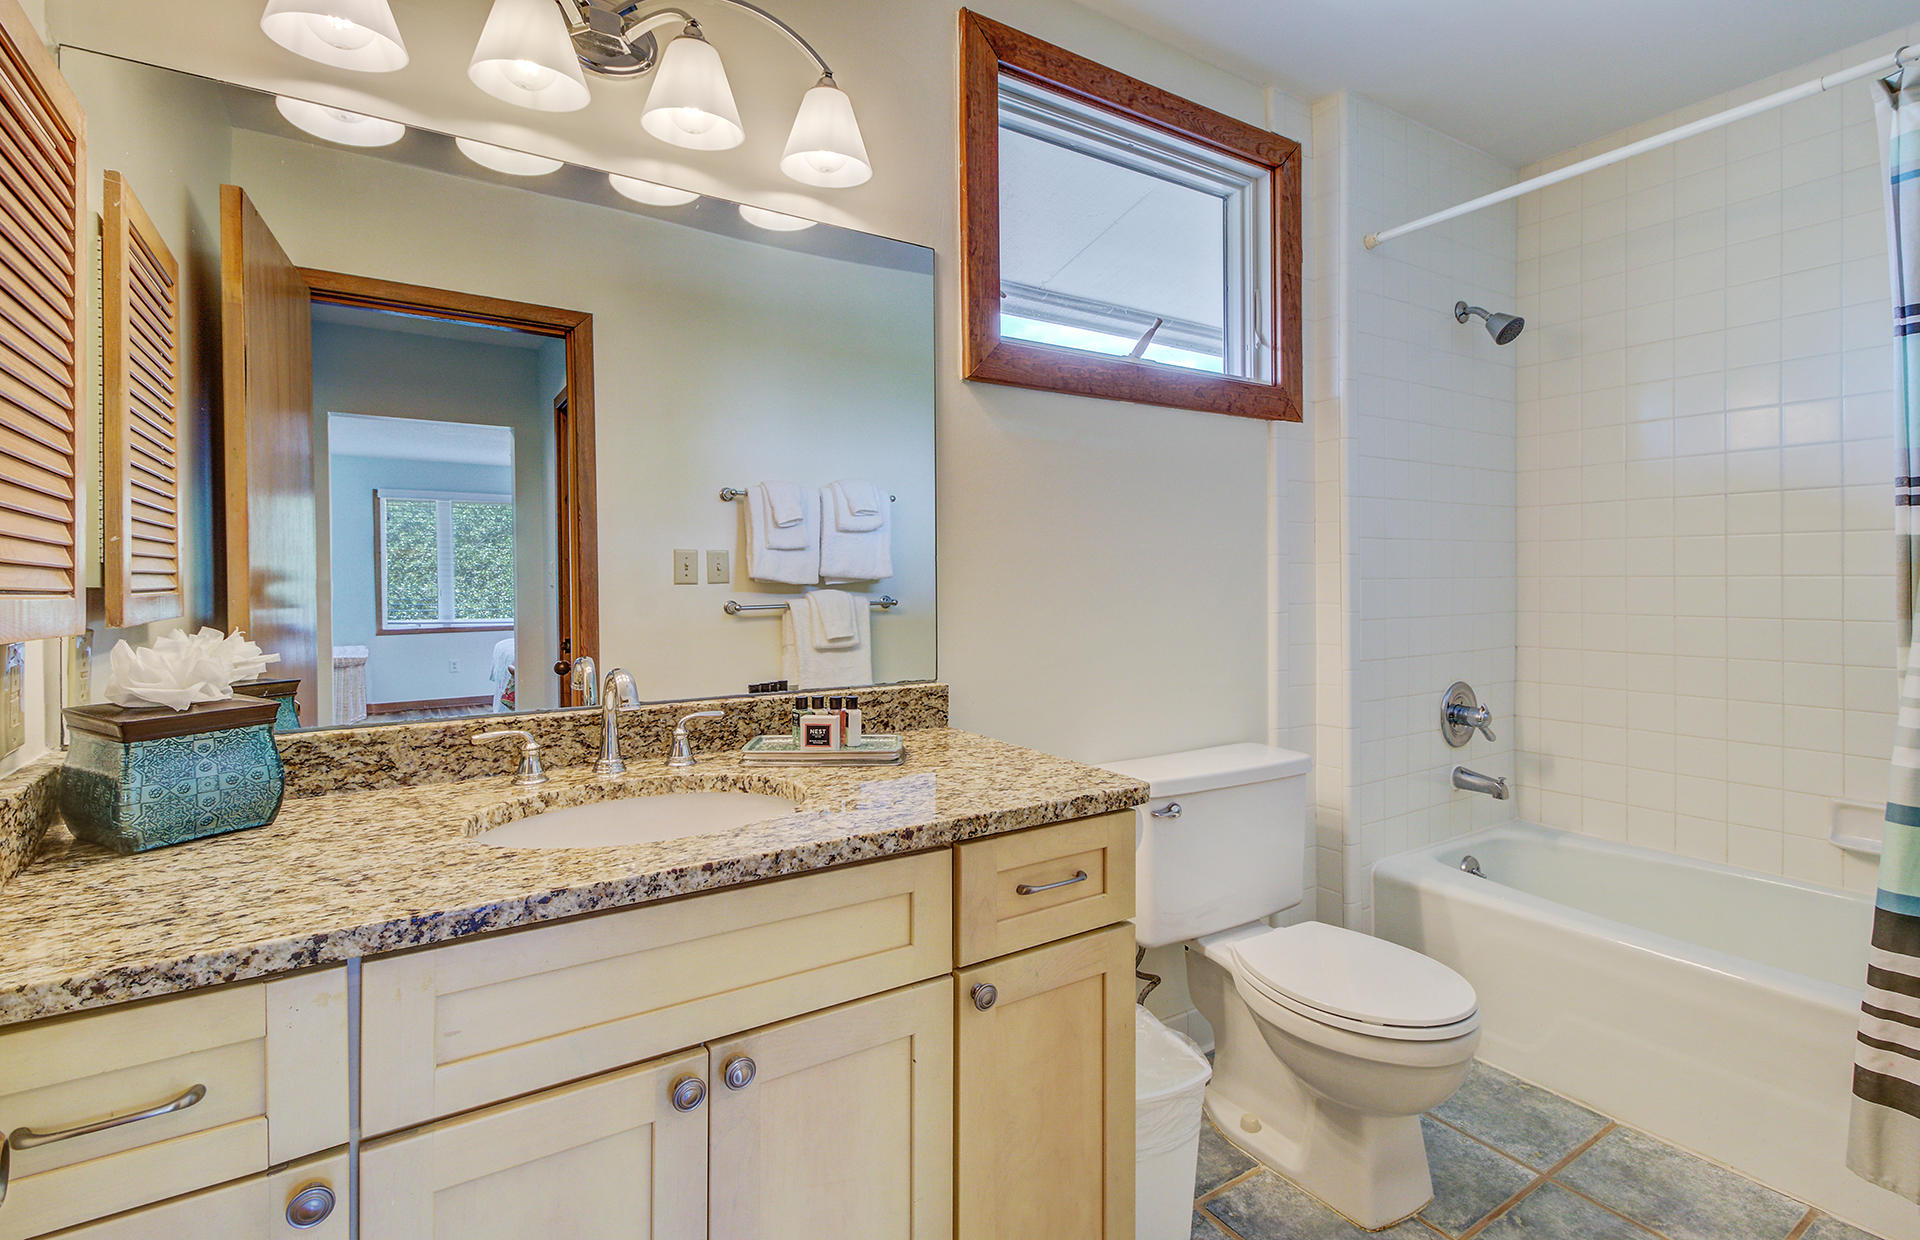 Wild Dunes Homes For Sale - 5 Seagrove, Isle of Palms, SC - 11